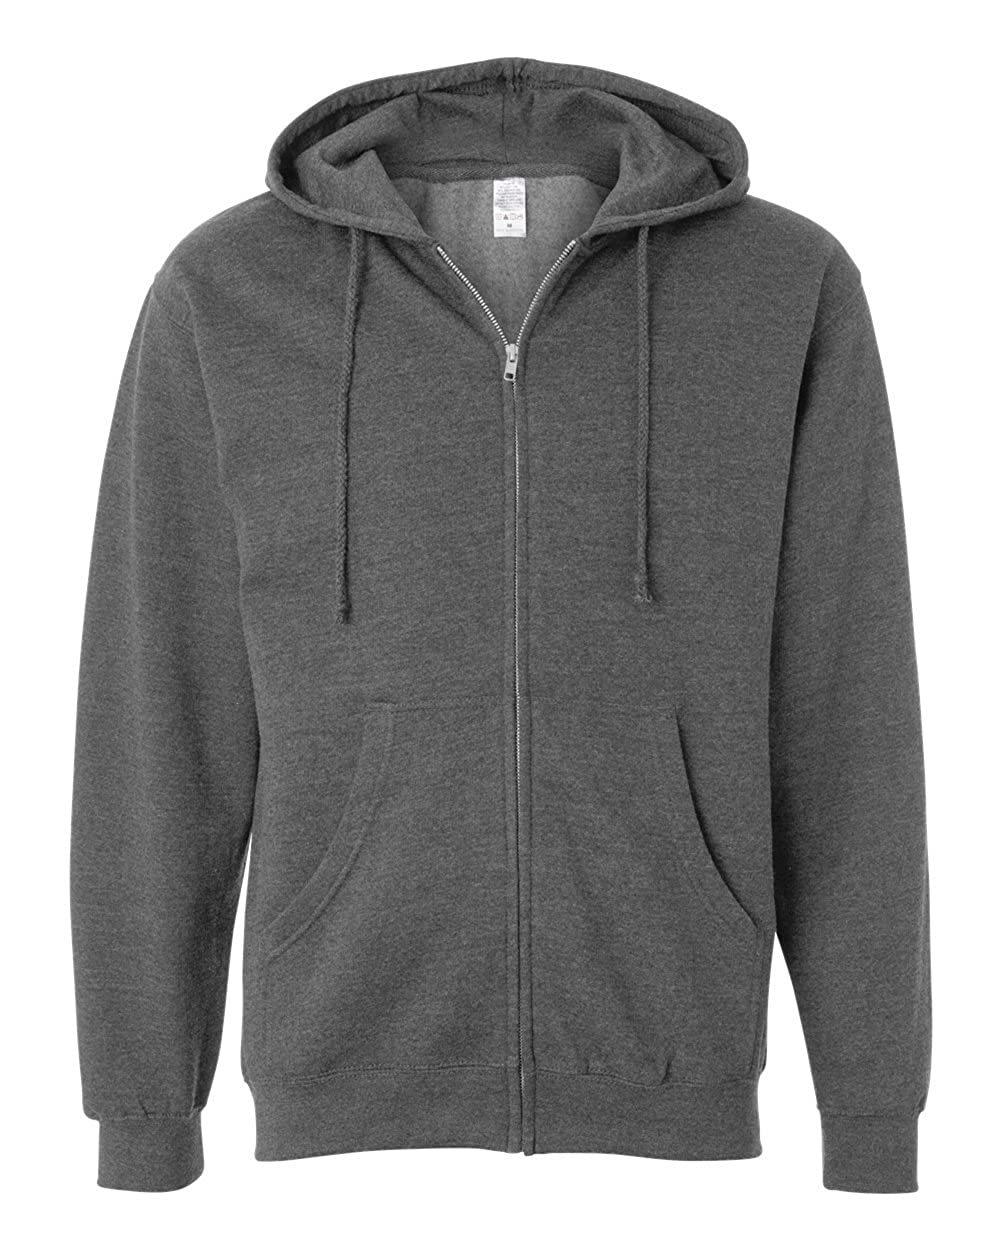 SS4500Z 2X-Large Gunmetal Heather Mens Midweight Full-Zip Hooded Sweatshirt Independent Trading Co